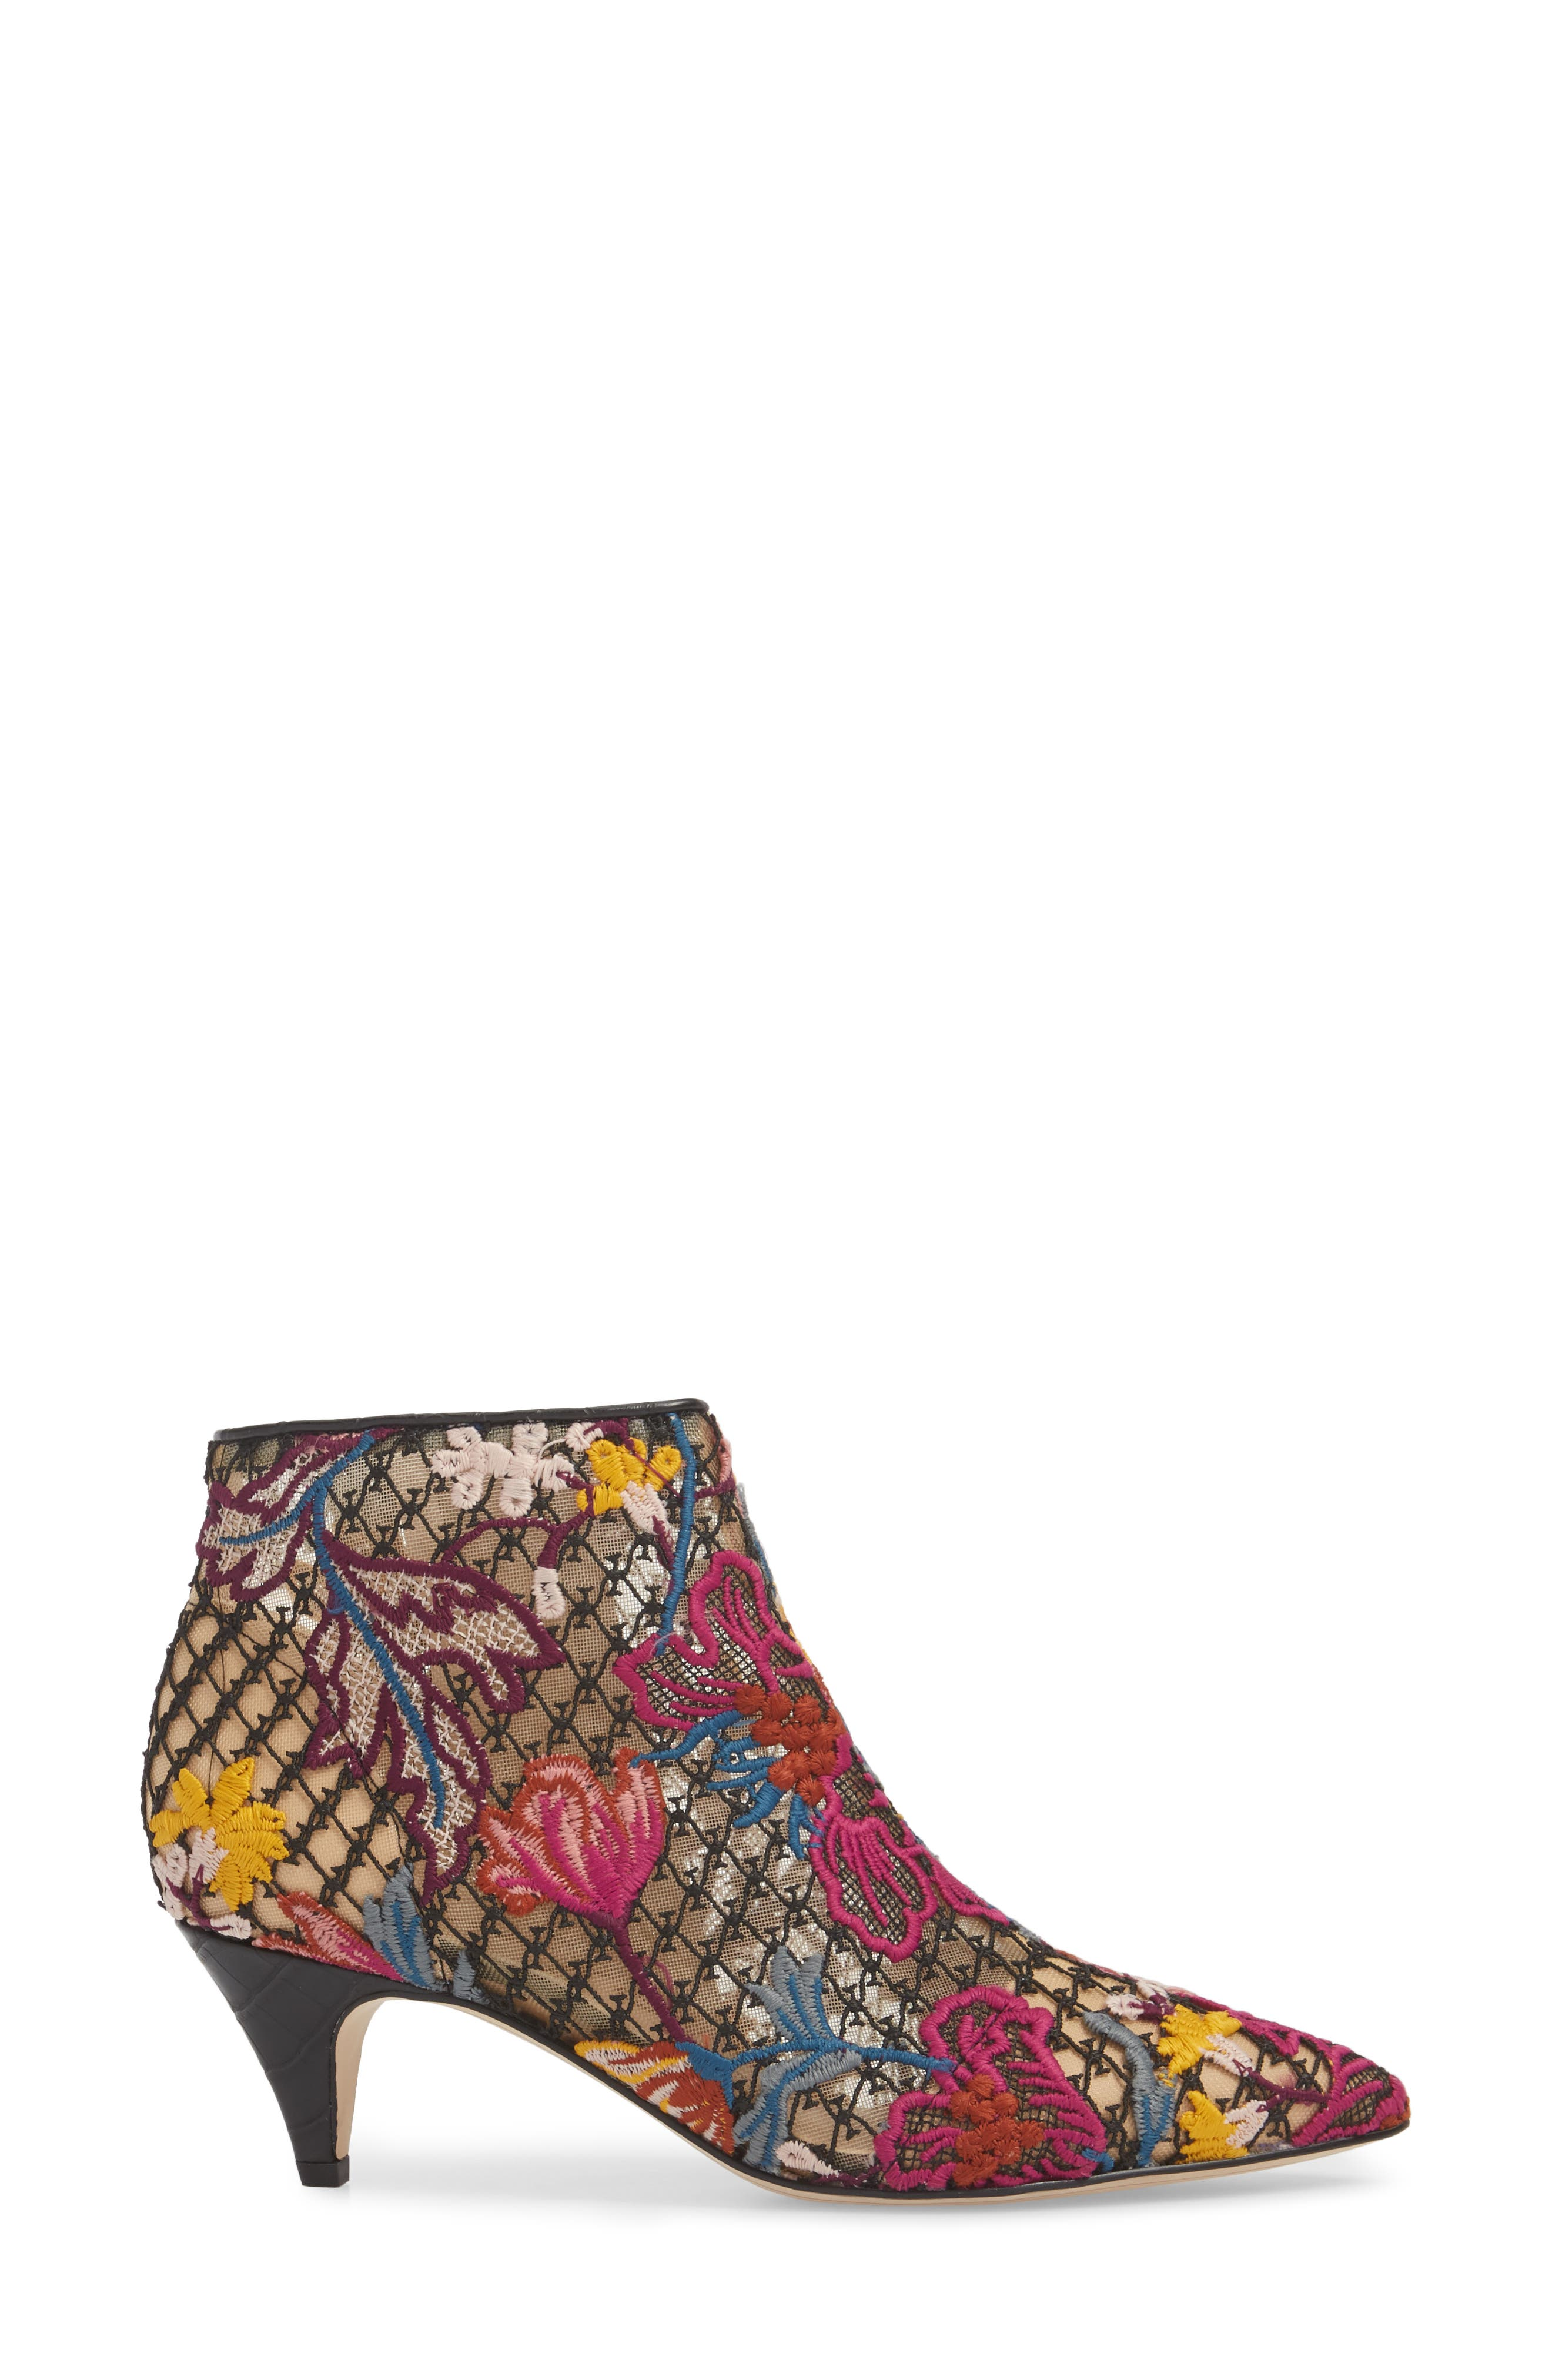 Kinzey Pointy Toe Bootie,                             Alternate thumbnail 3, color,                             Bright Multi Floral Lace